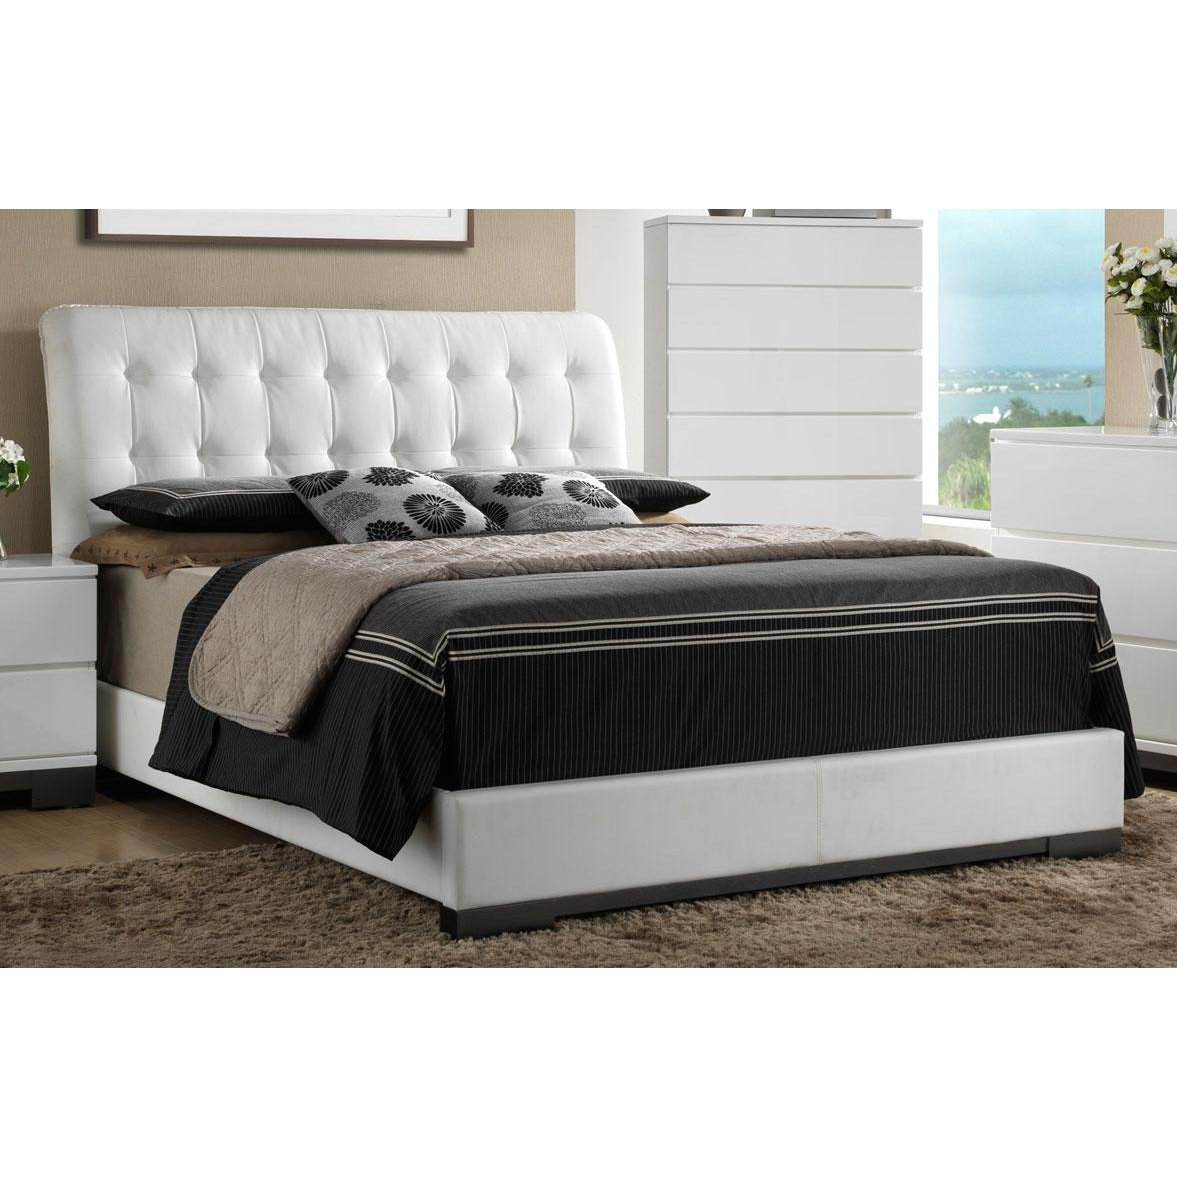 Avery White Tufted Queen Bed